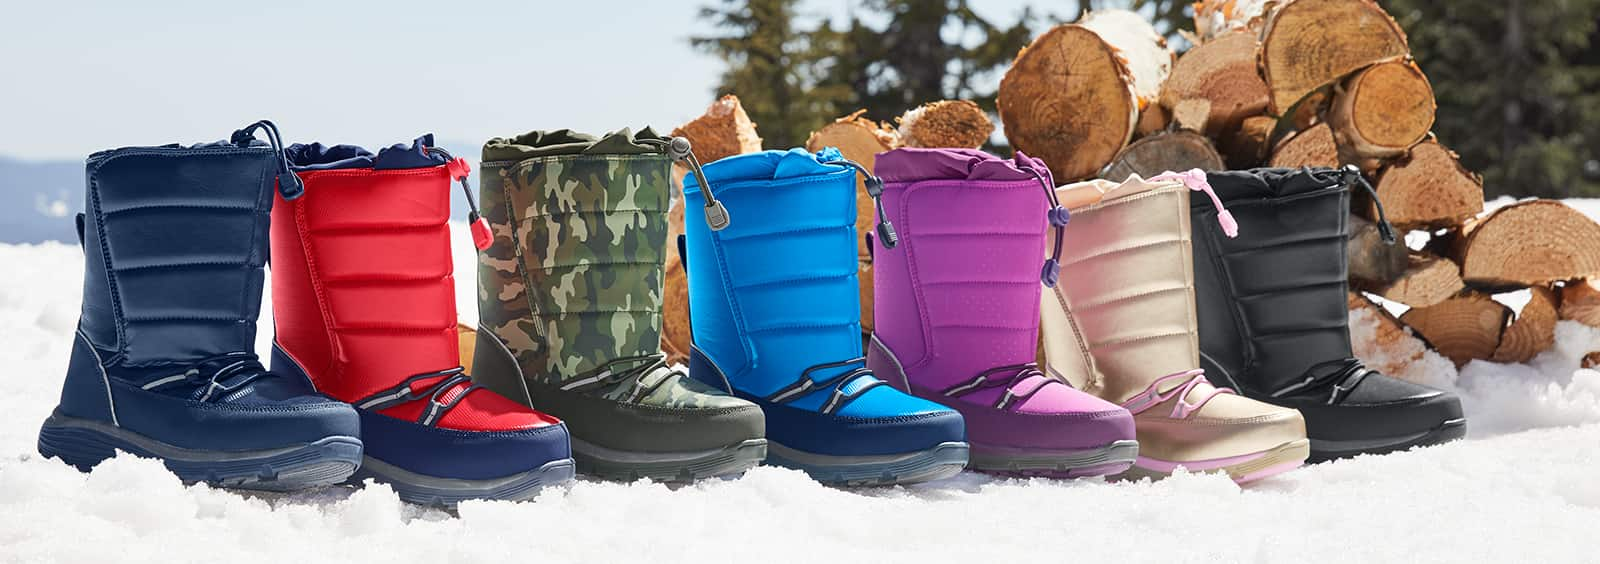 Kids' Boots in Good Shape All Winter